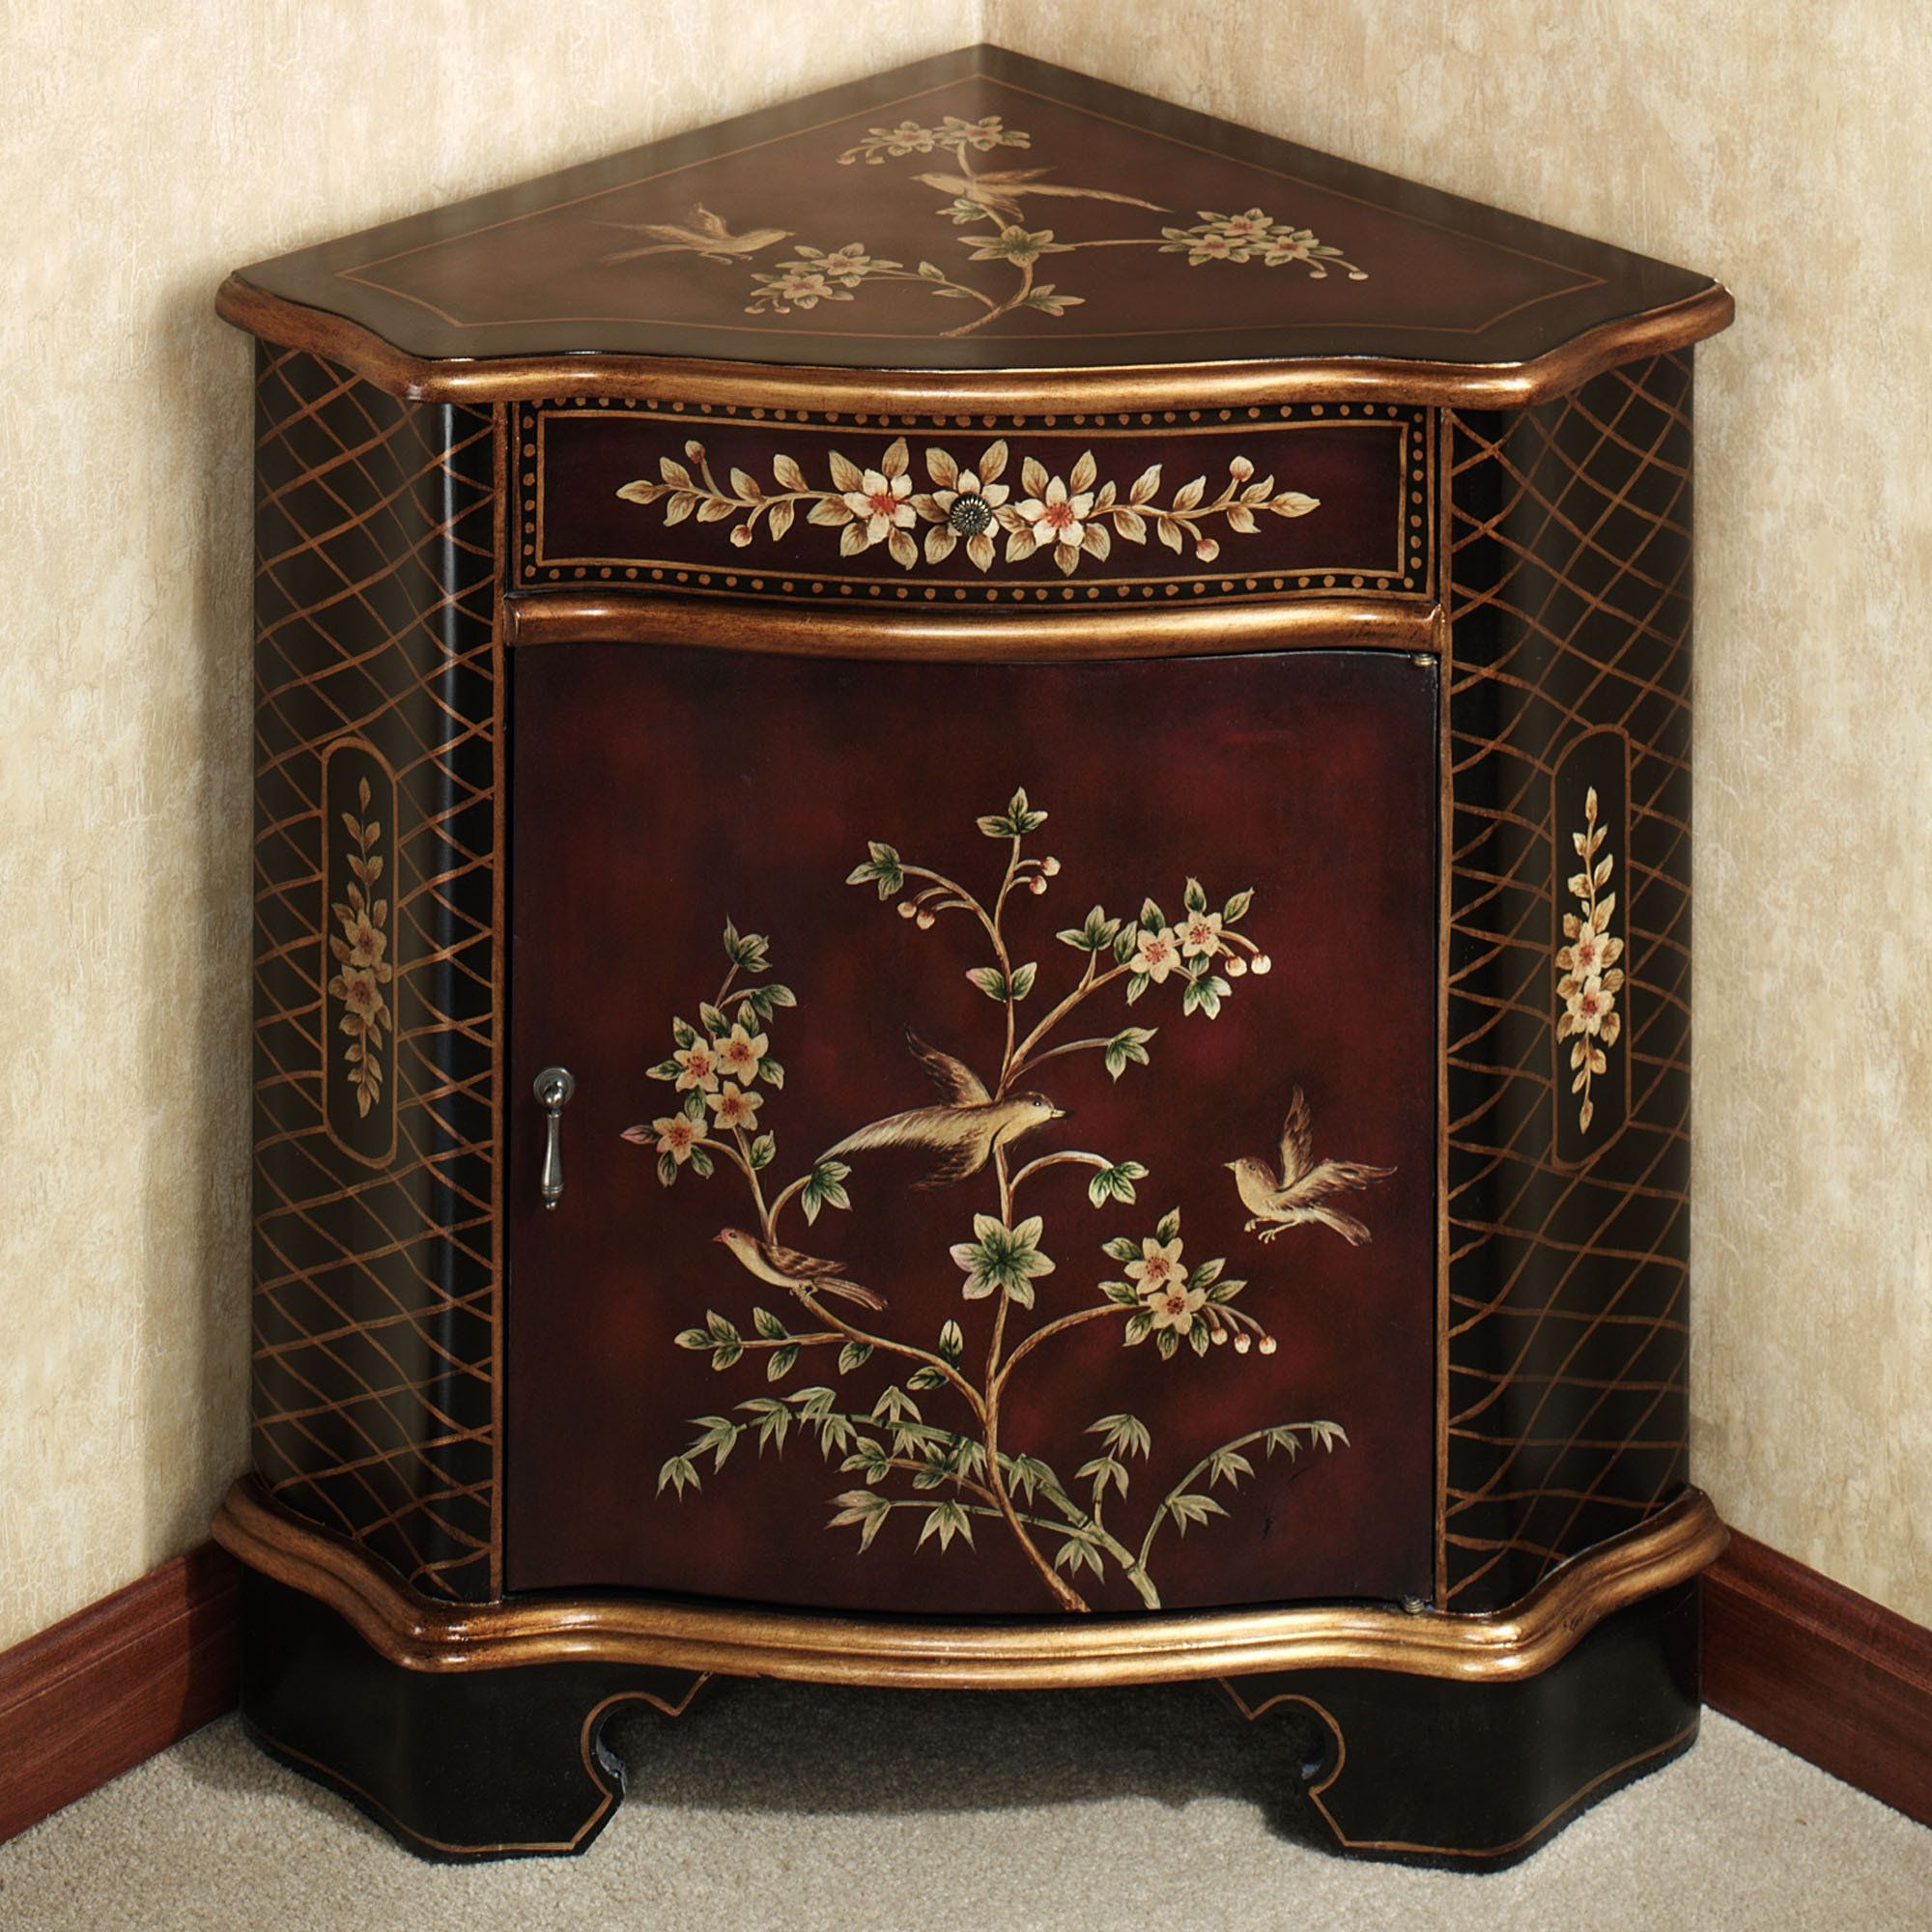 Luxury Corner Accent Table For Dining Room Of Annika With Black And Gold Design